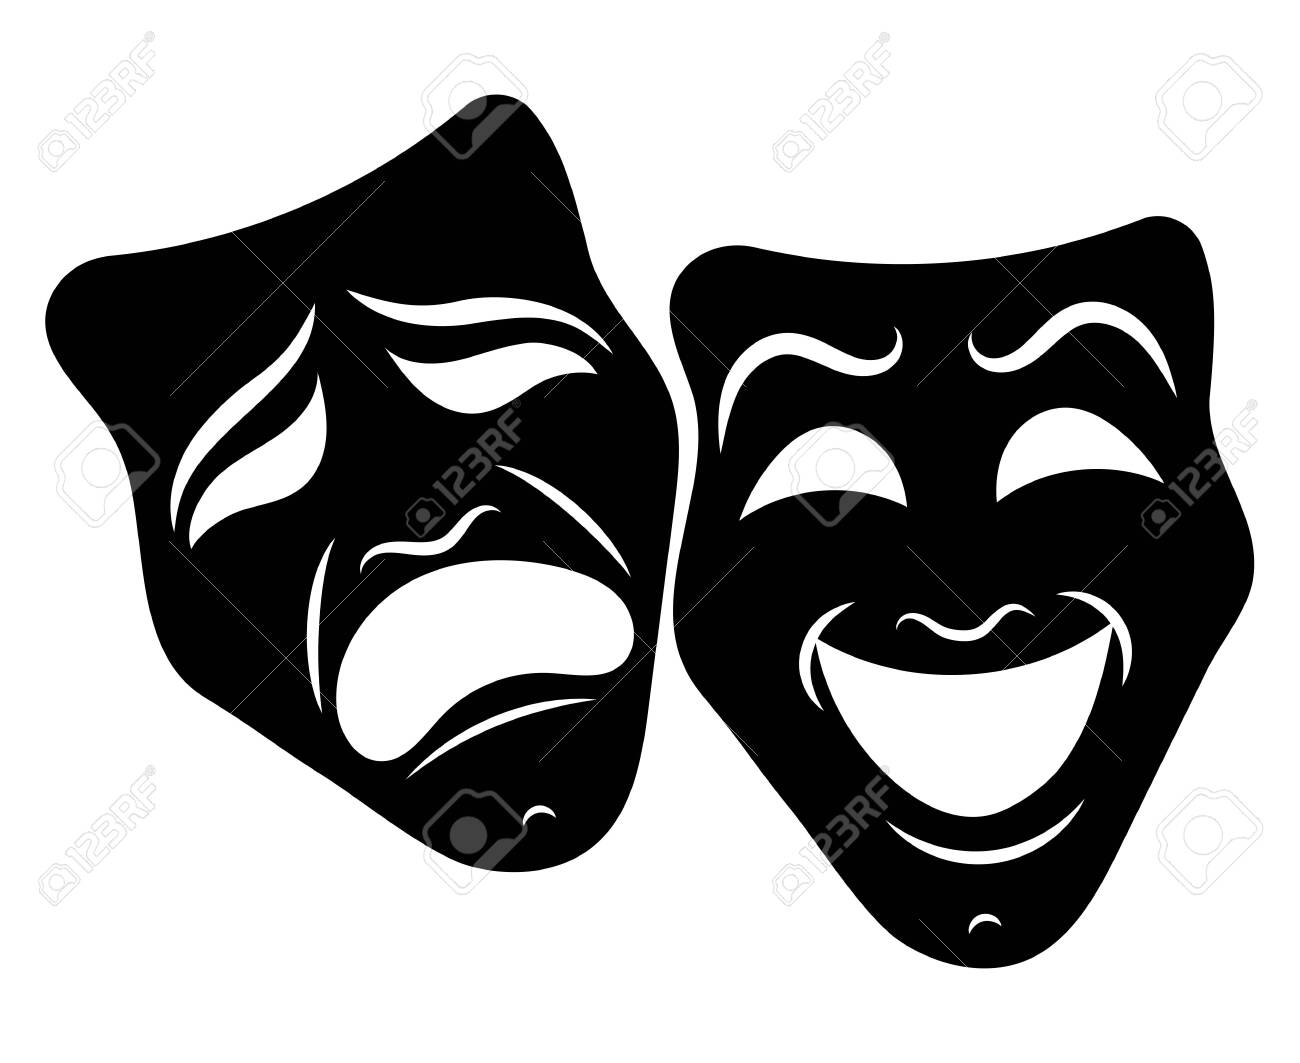 Theater Masks Drama And Comedy Illustration For The Theater Royalty Free Cliparts Vectors And Stock Illustration Image 129541624 Turquoise drama theatrical mask icon isolated on white background. theater masks drama and comedy illustration for the theater